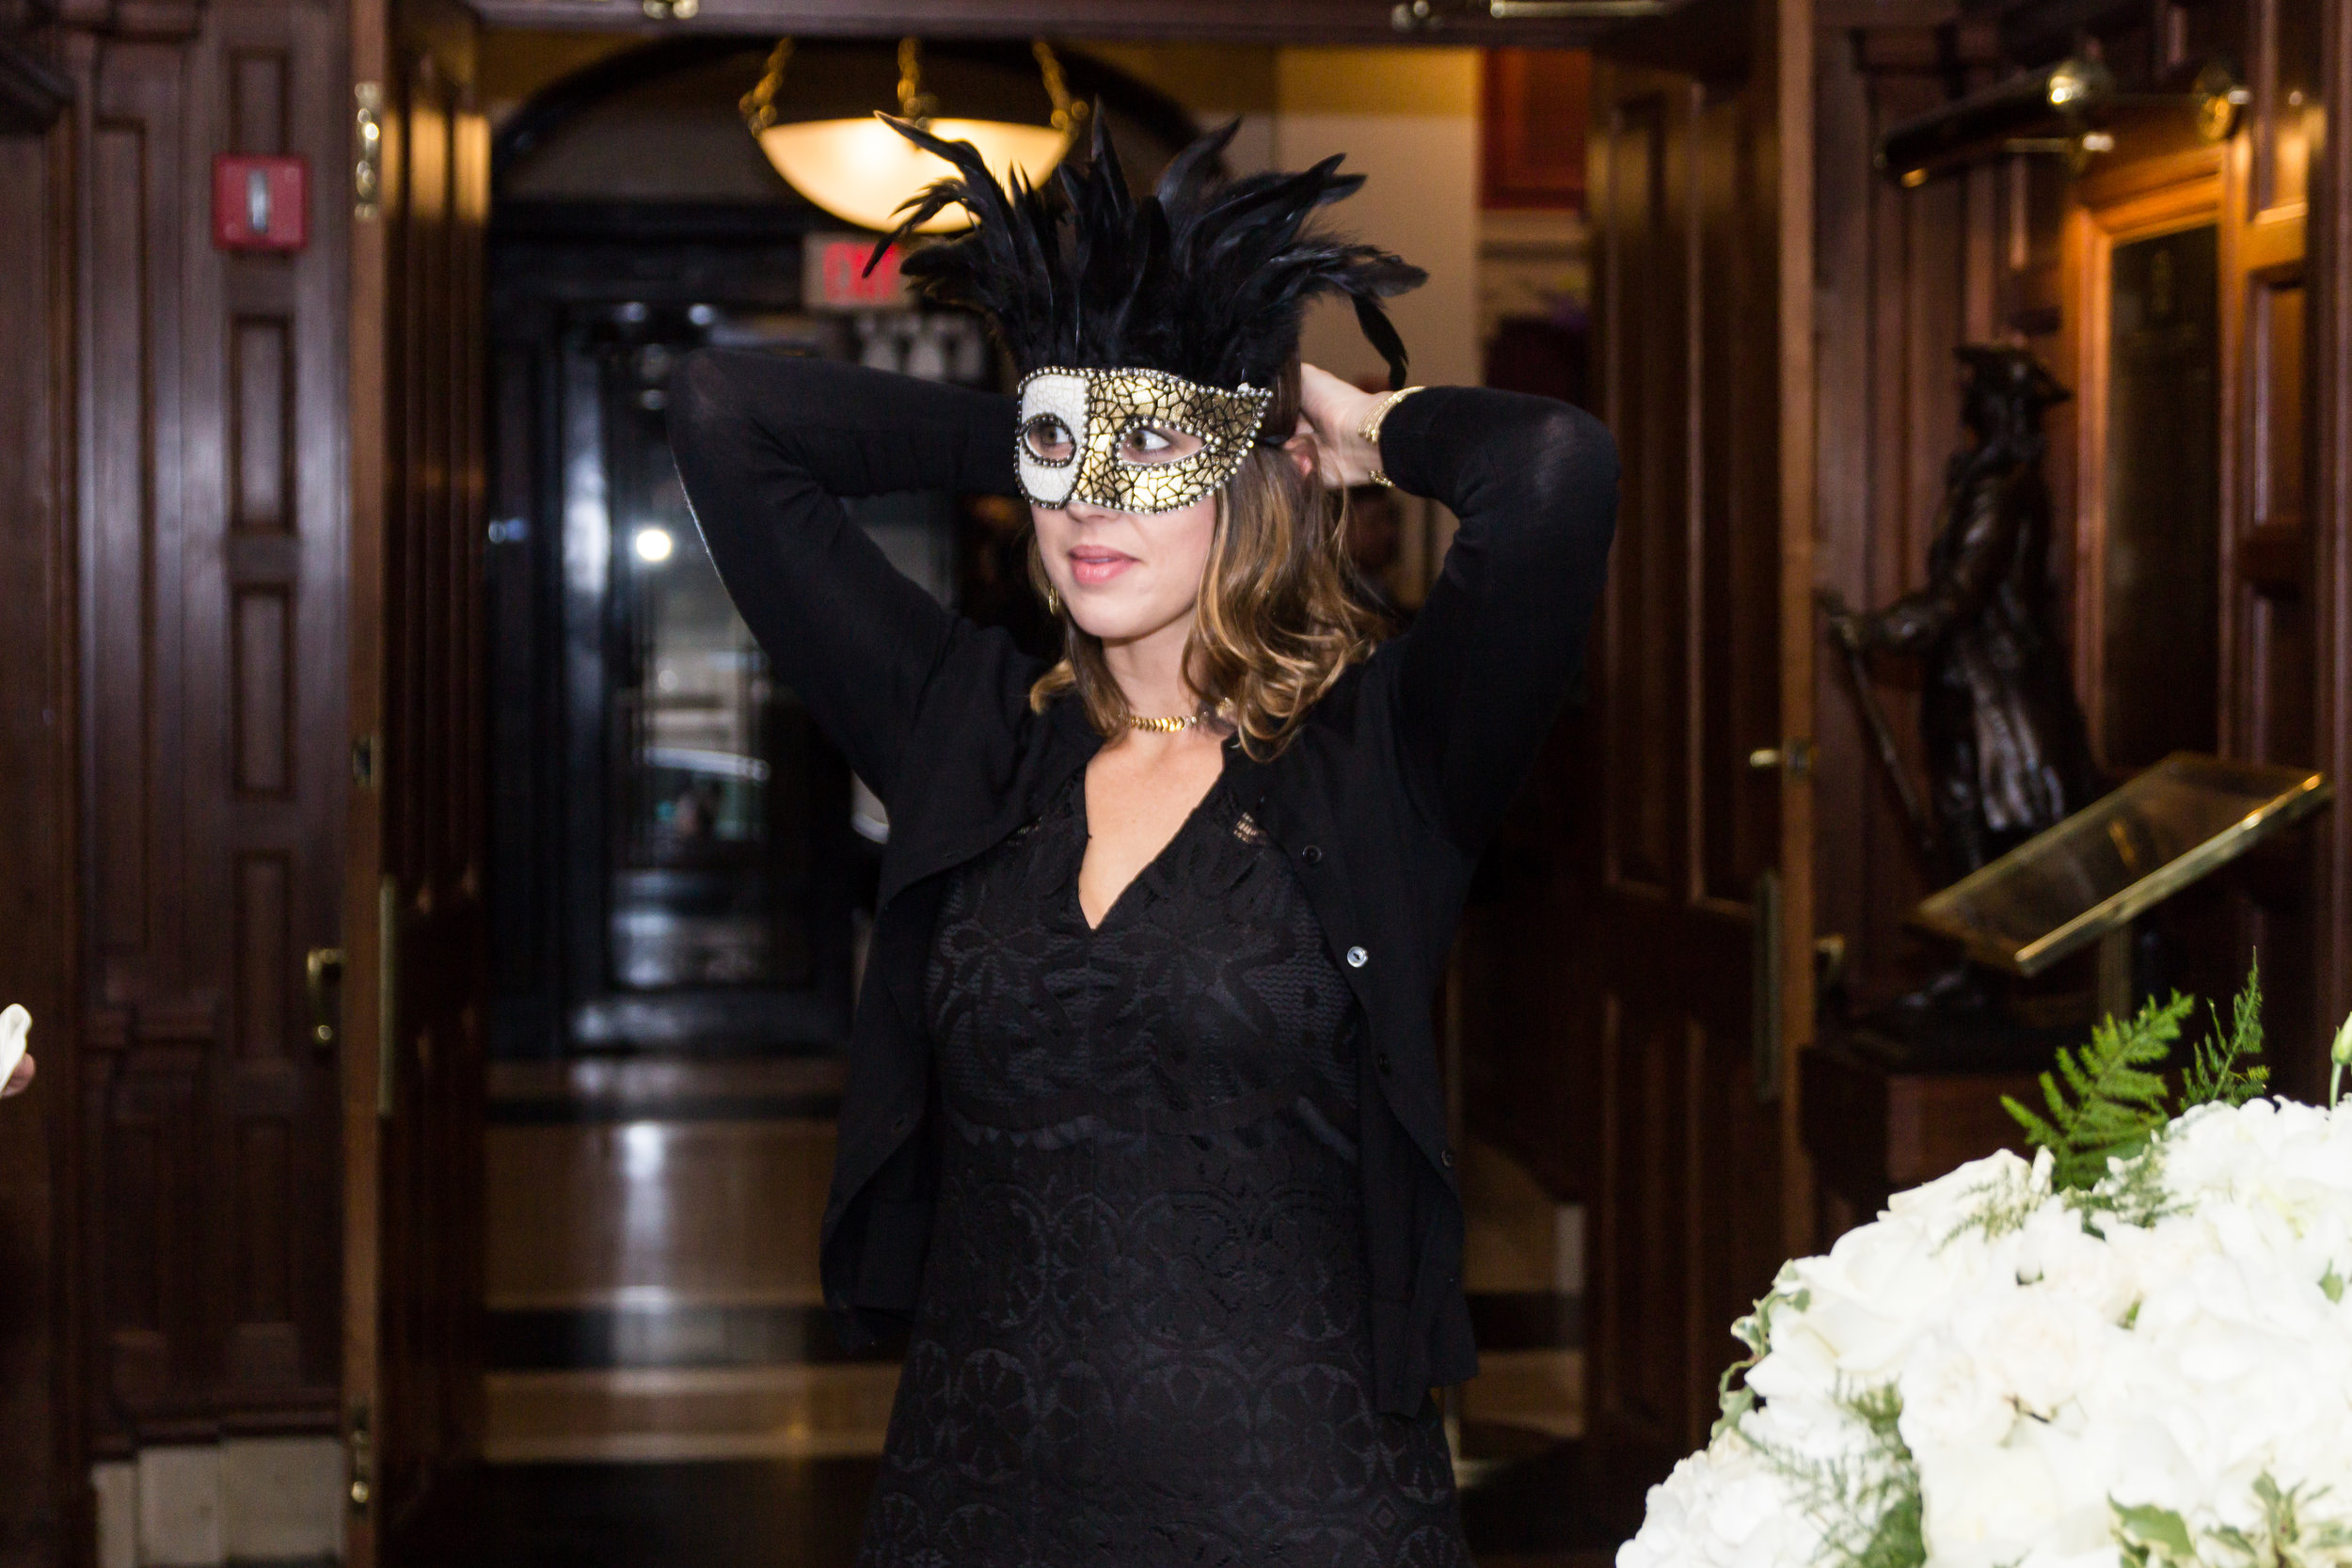 Guest chooses her mask before heading into cocktail reception